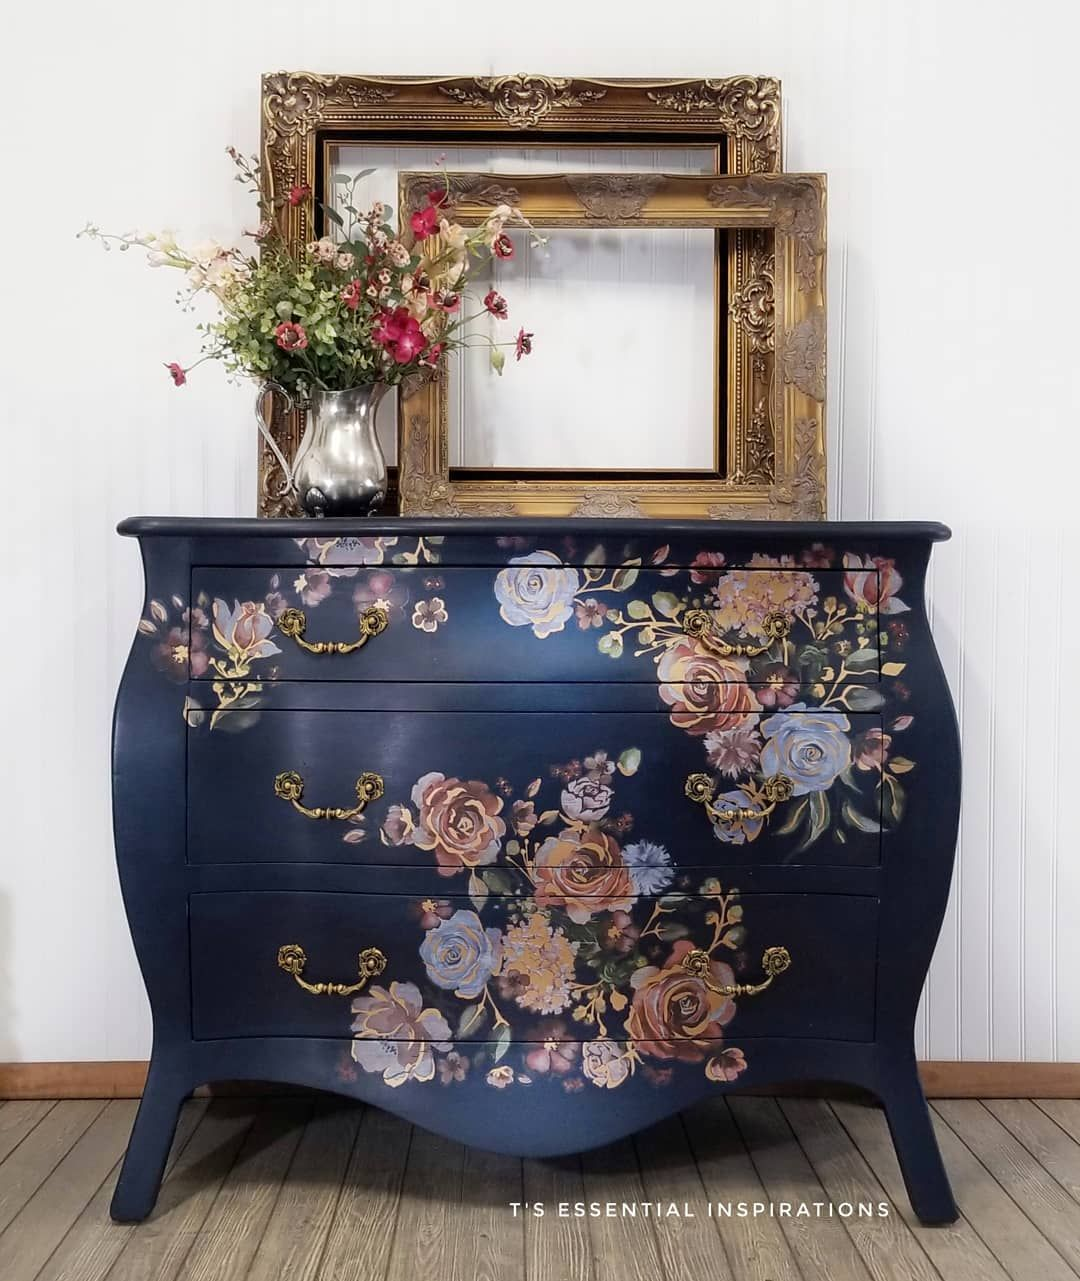 T S Essential Inspirations On Instagram Last One For The Week Rose Rogue Transfer Bombay Chest Ts Mobilier De Salon Mobilier Genial Relooking De Mobilier